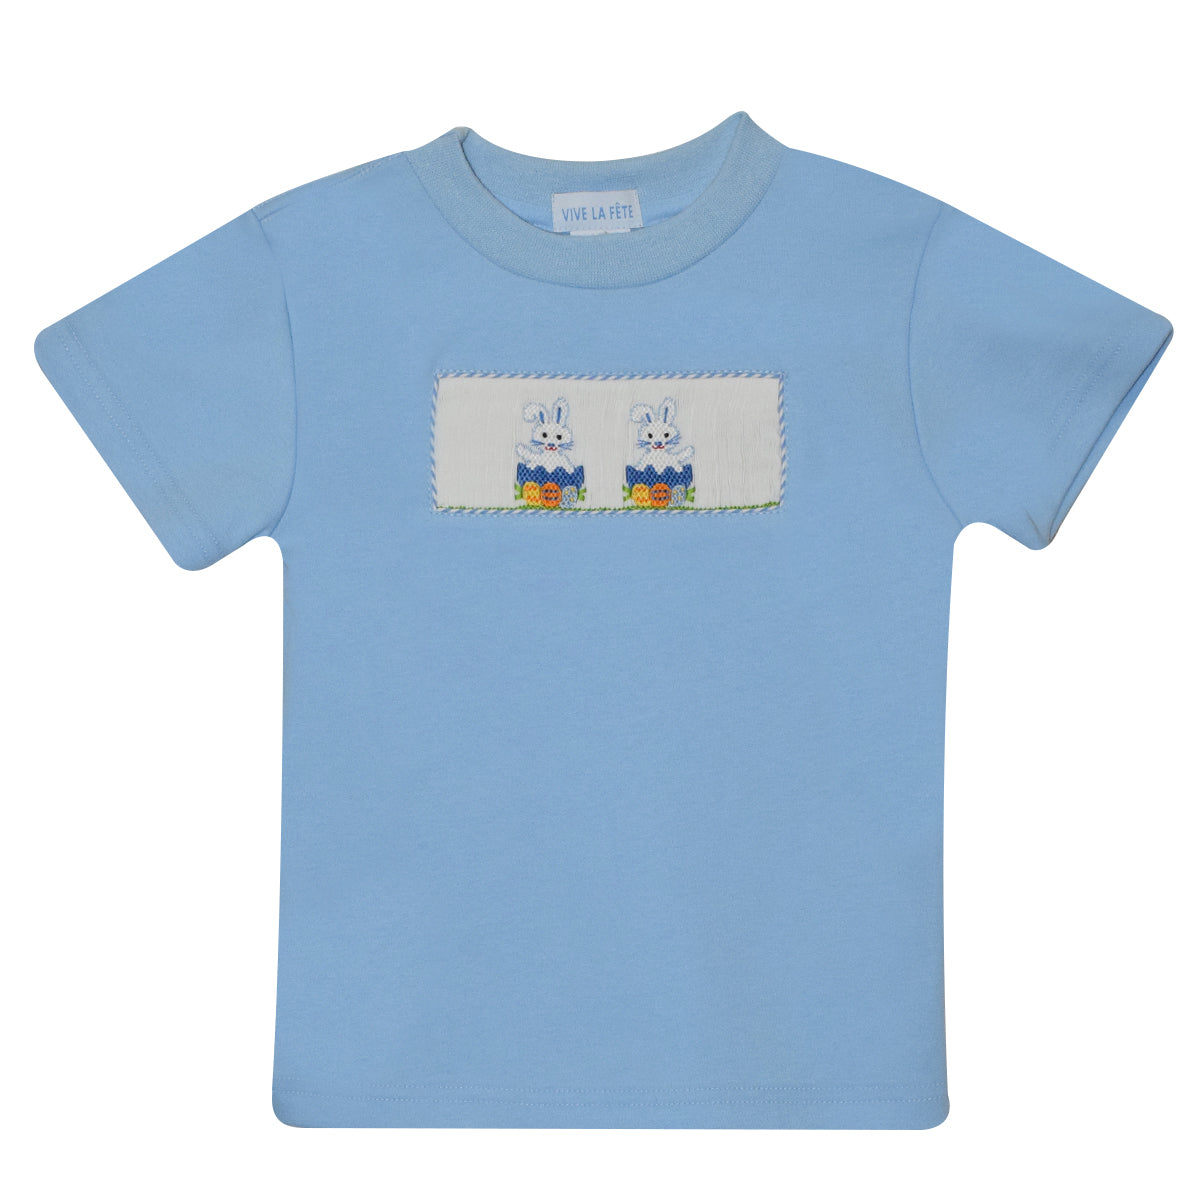 Easter Smocked Light Blue Knit Boys Tee Shirt Short Sleeve - Vive La Fête - Online Apparel Store